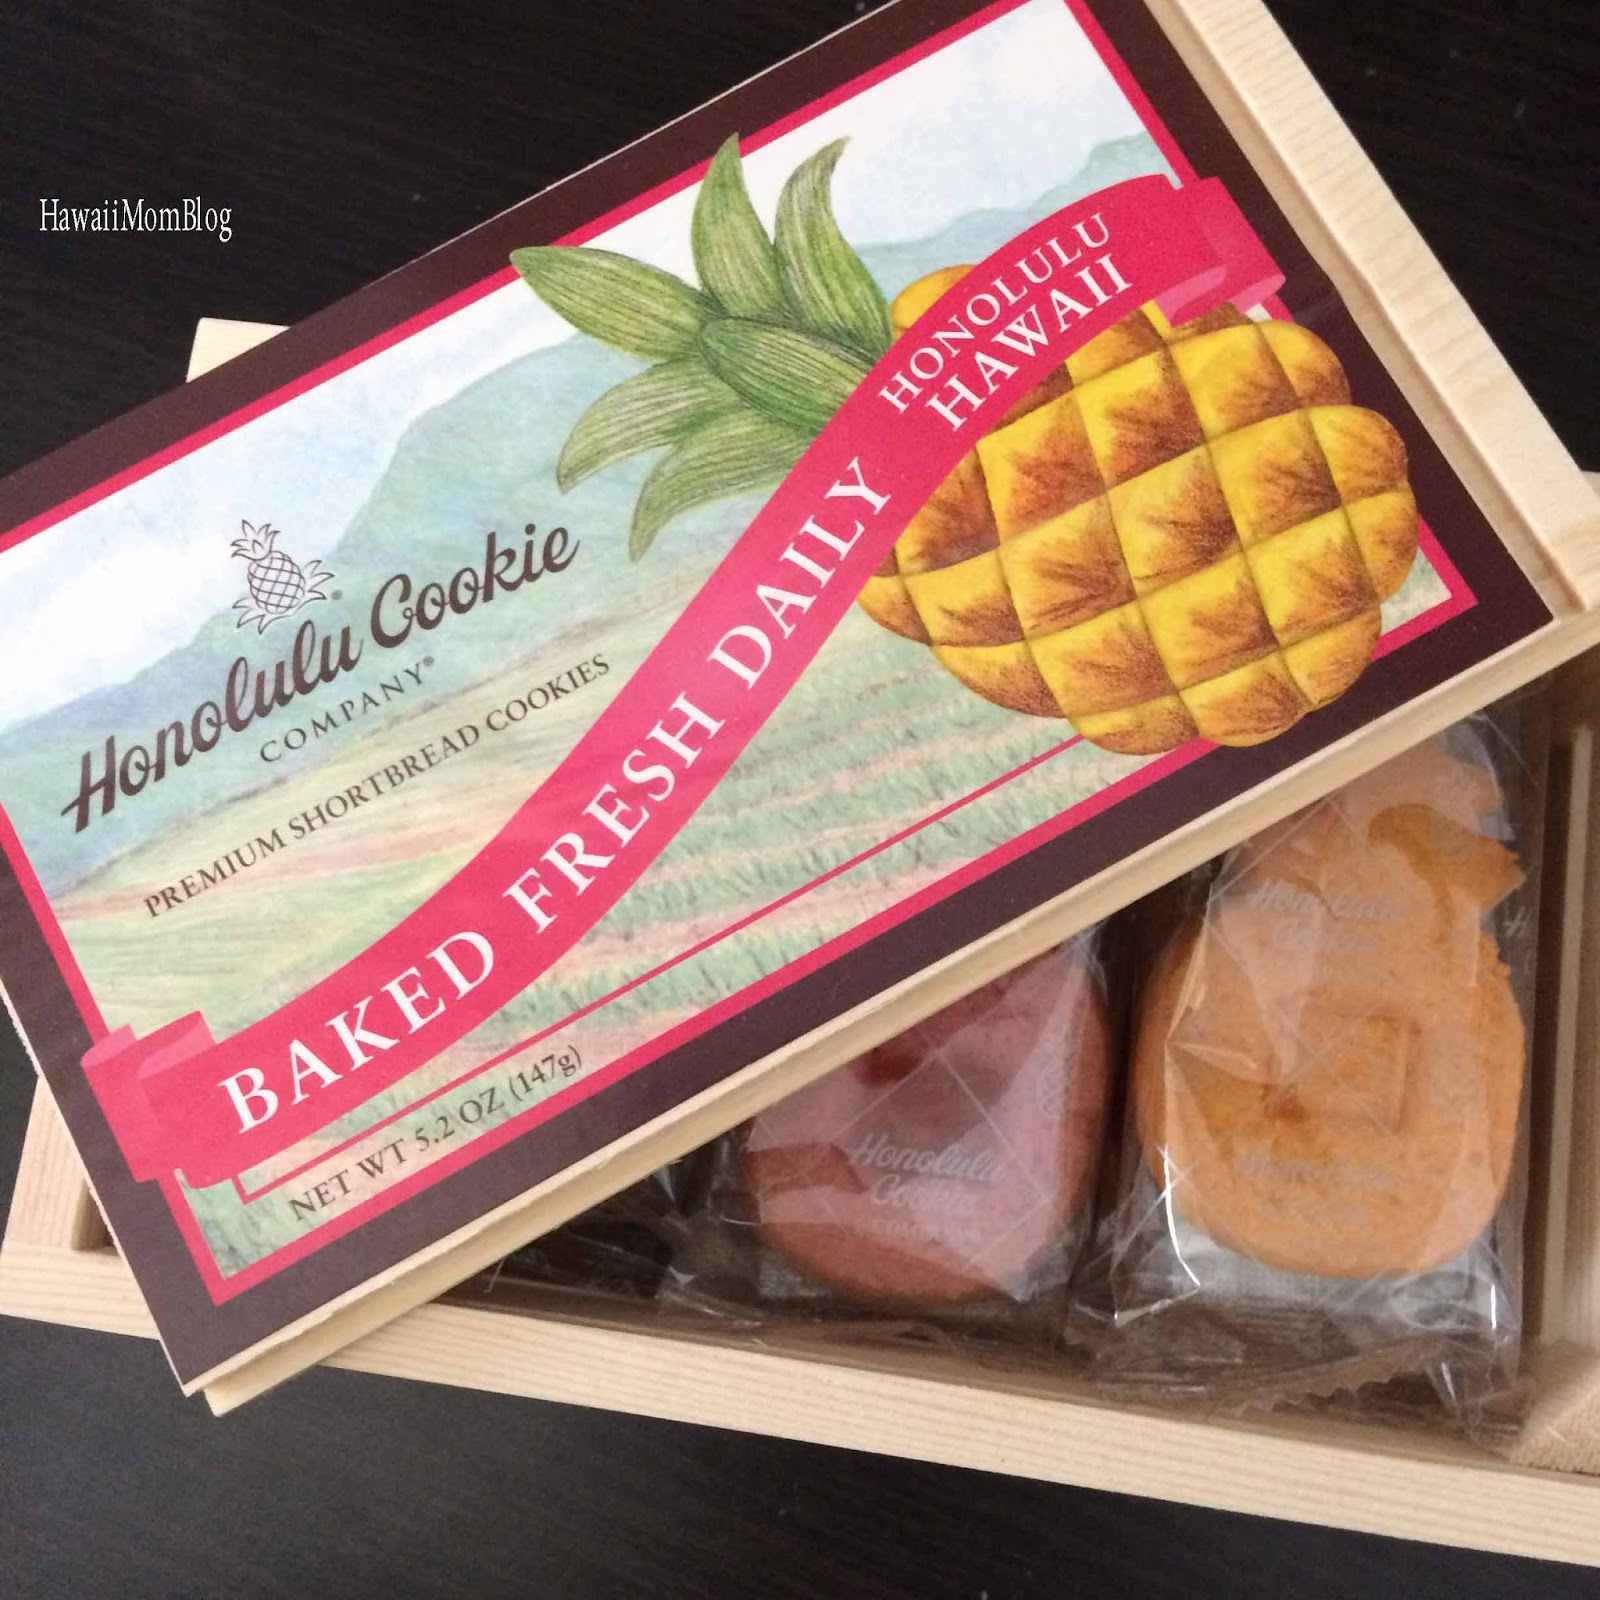 I Love Honolulu Cookiepany's Shortbread My Faves Are Usually The  Chocolatedipped Varieties, But I Really